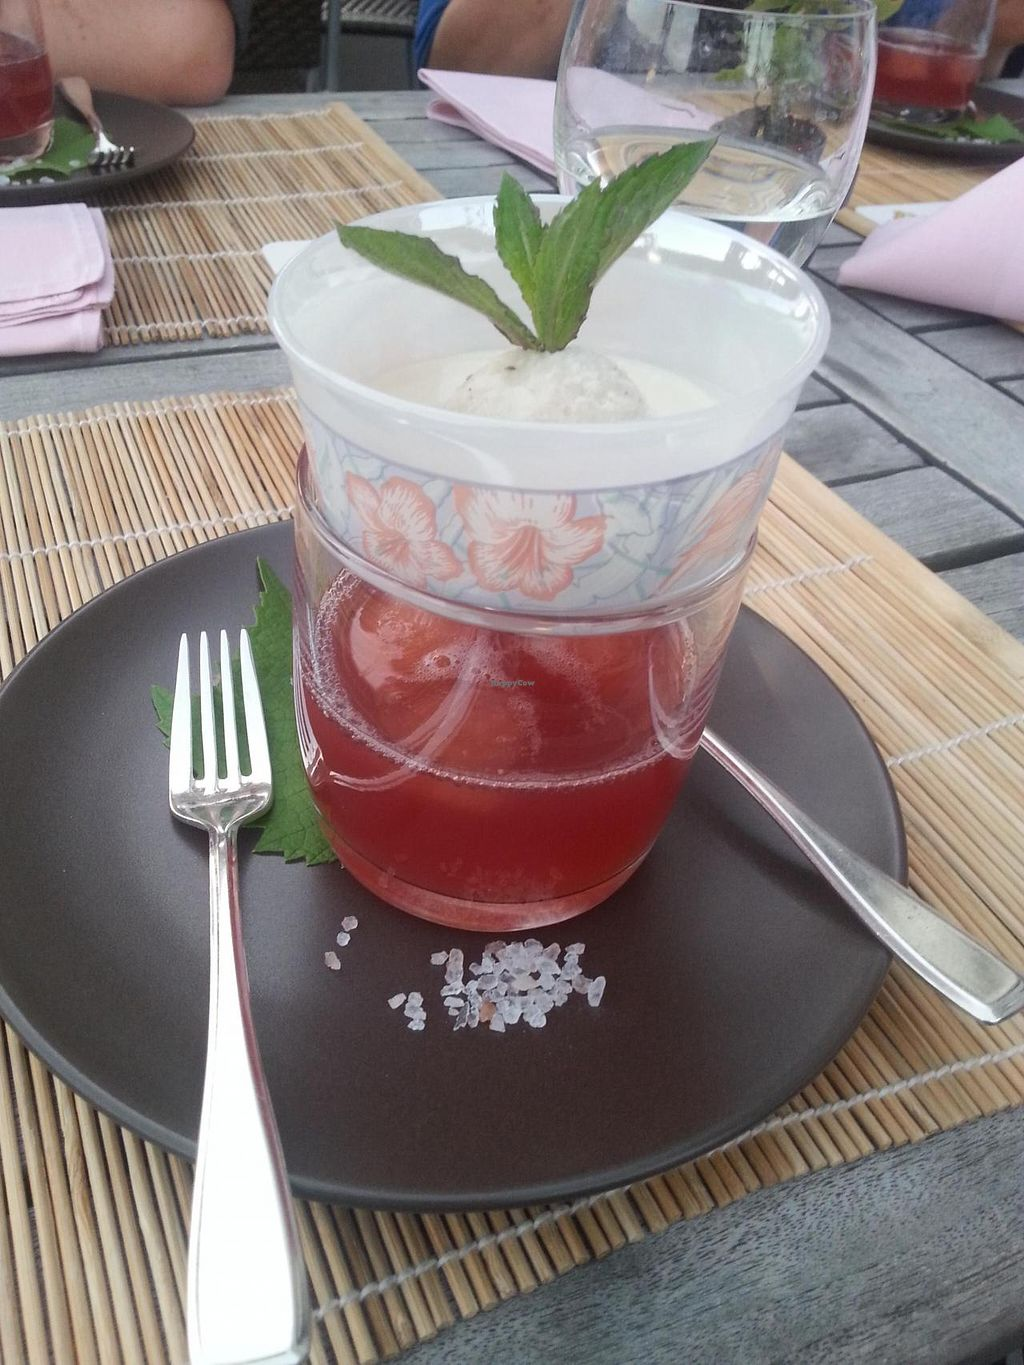 """Photo of Die Weinstube Nachhaltig Geniessen  by <a href=""""/members/profile/coi"""">coi</a> <br/>Rhubarb-Dessert <br/> August 26, 2014  - <a href='/contact/abuse/image/38053/78285'>Report</a>"""